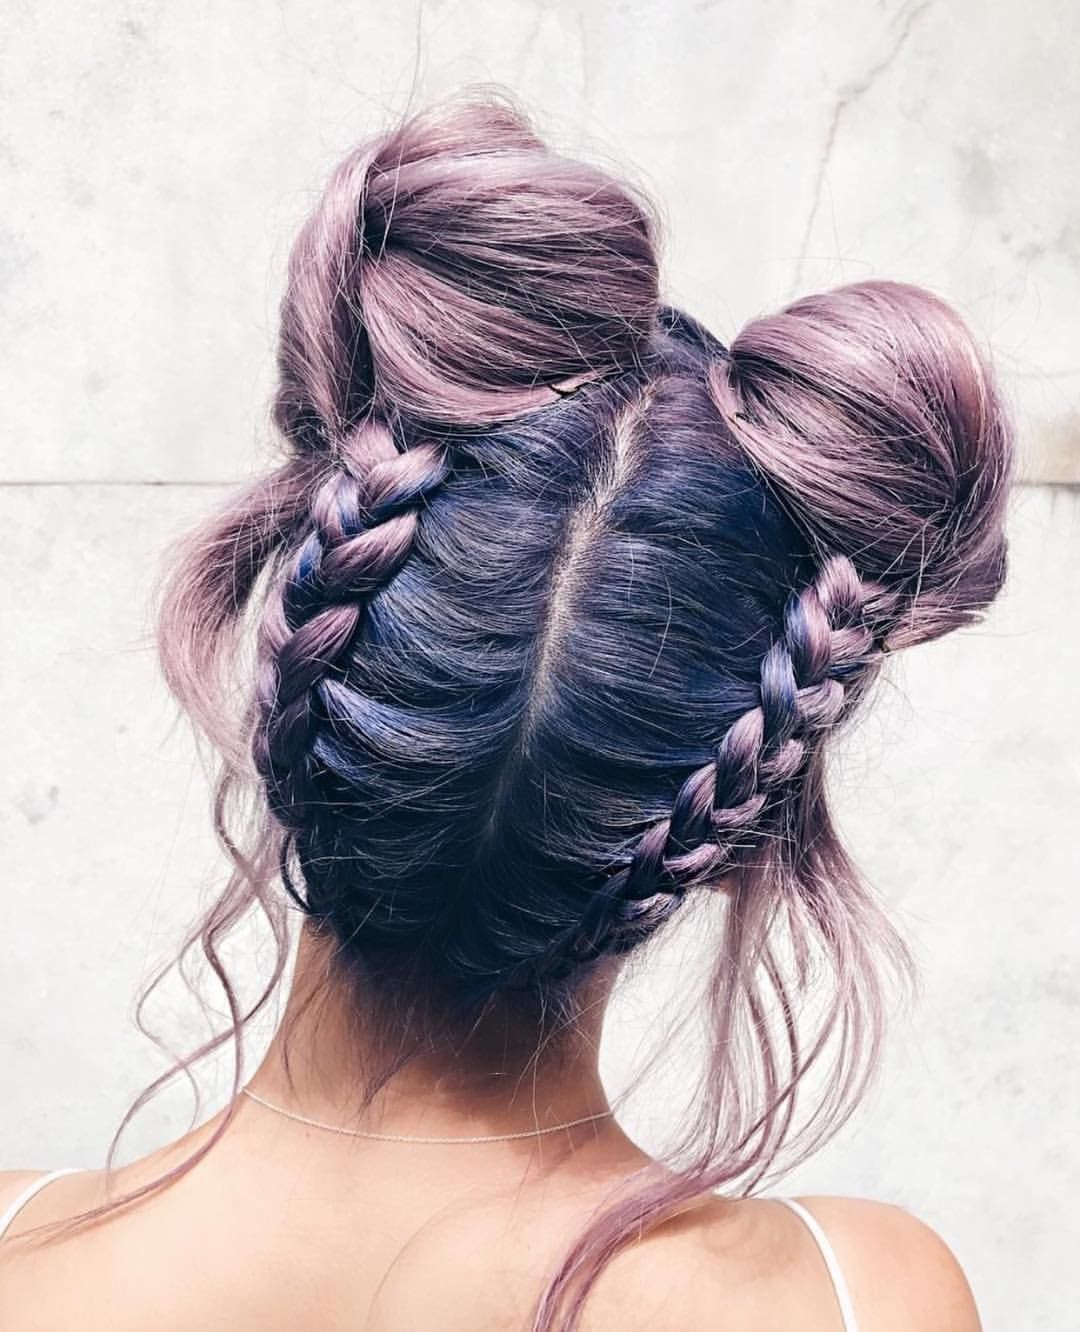 Purple Braided Buns Short Hair Long Hair Braids Hair Beauty Inspiration Blonde Bobs Buns Brunette Hair Inspirat Hair Styles Hairstyle Long Hair Styles